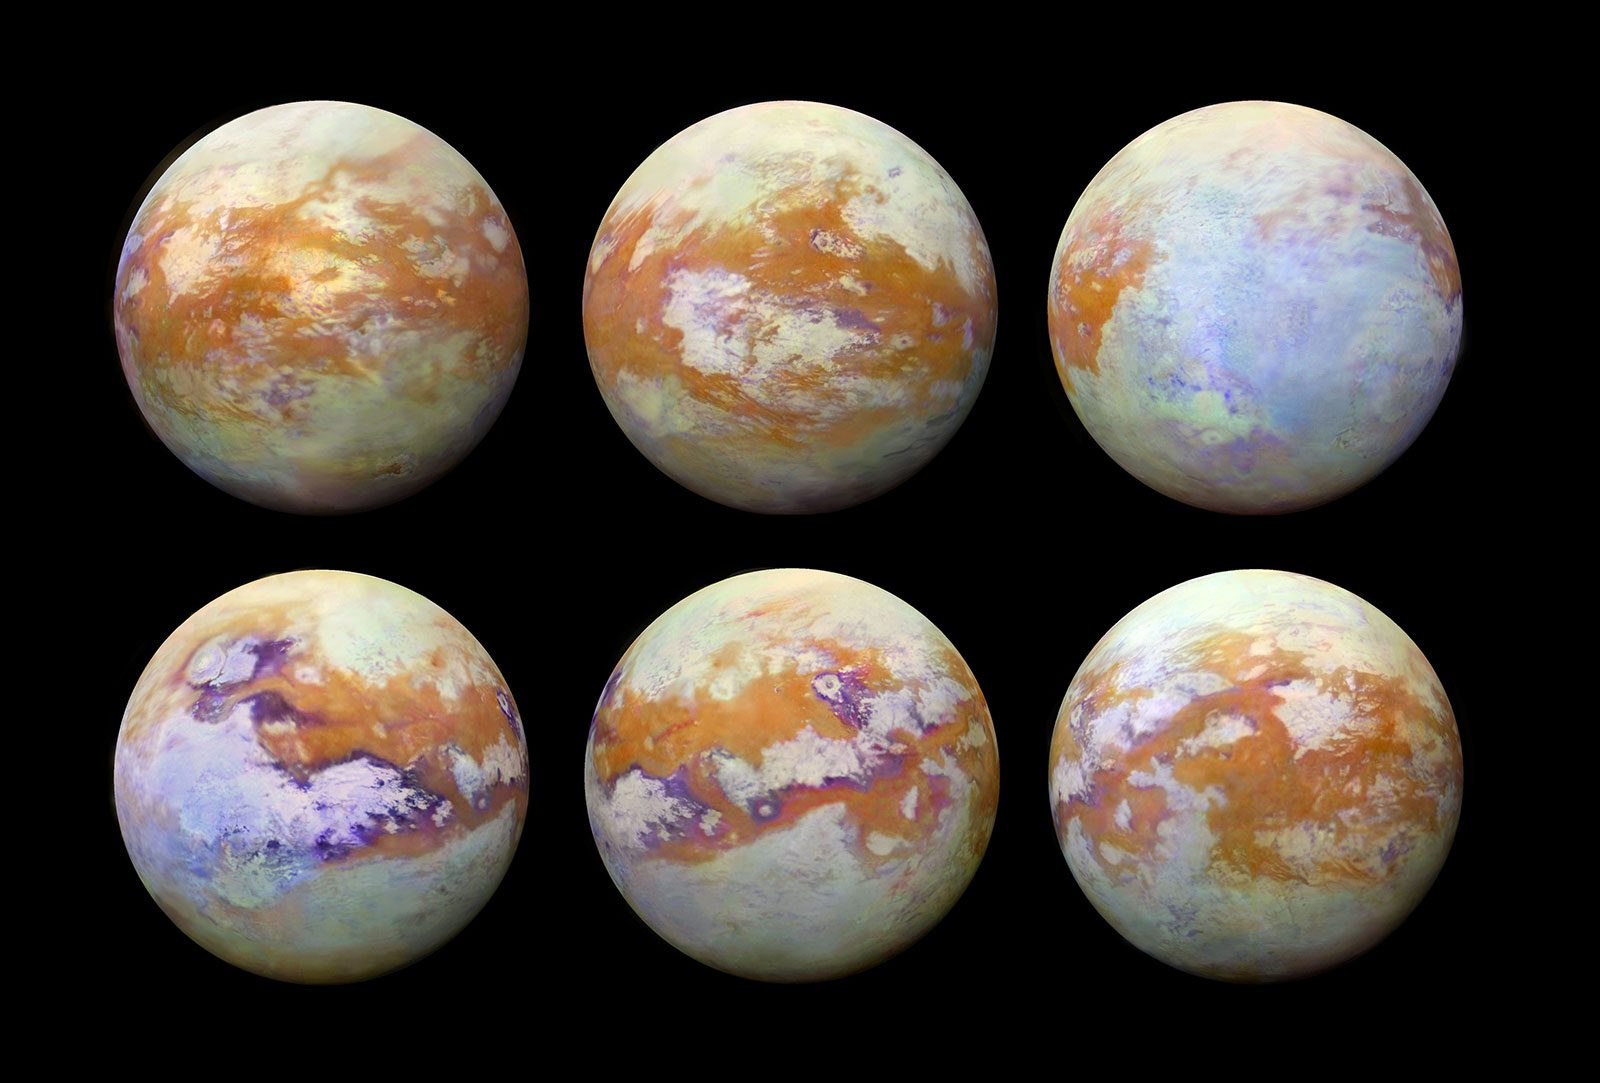 six images of Saturn's moon Titan